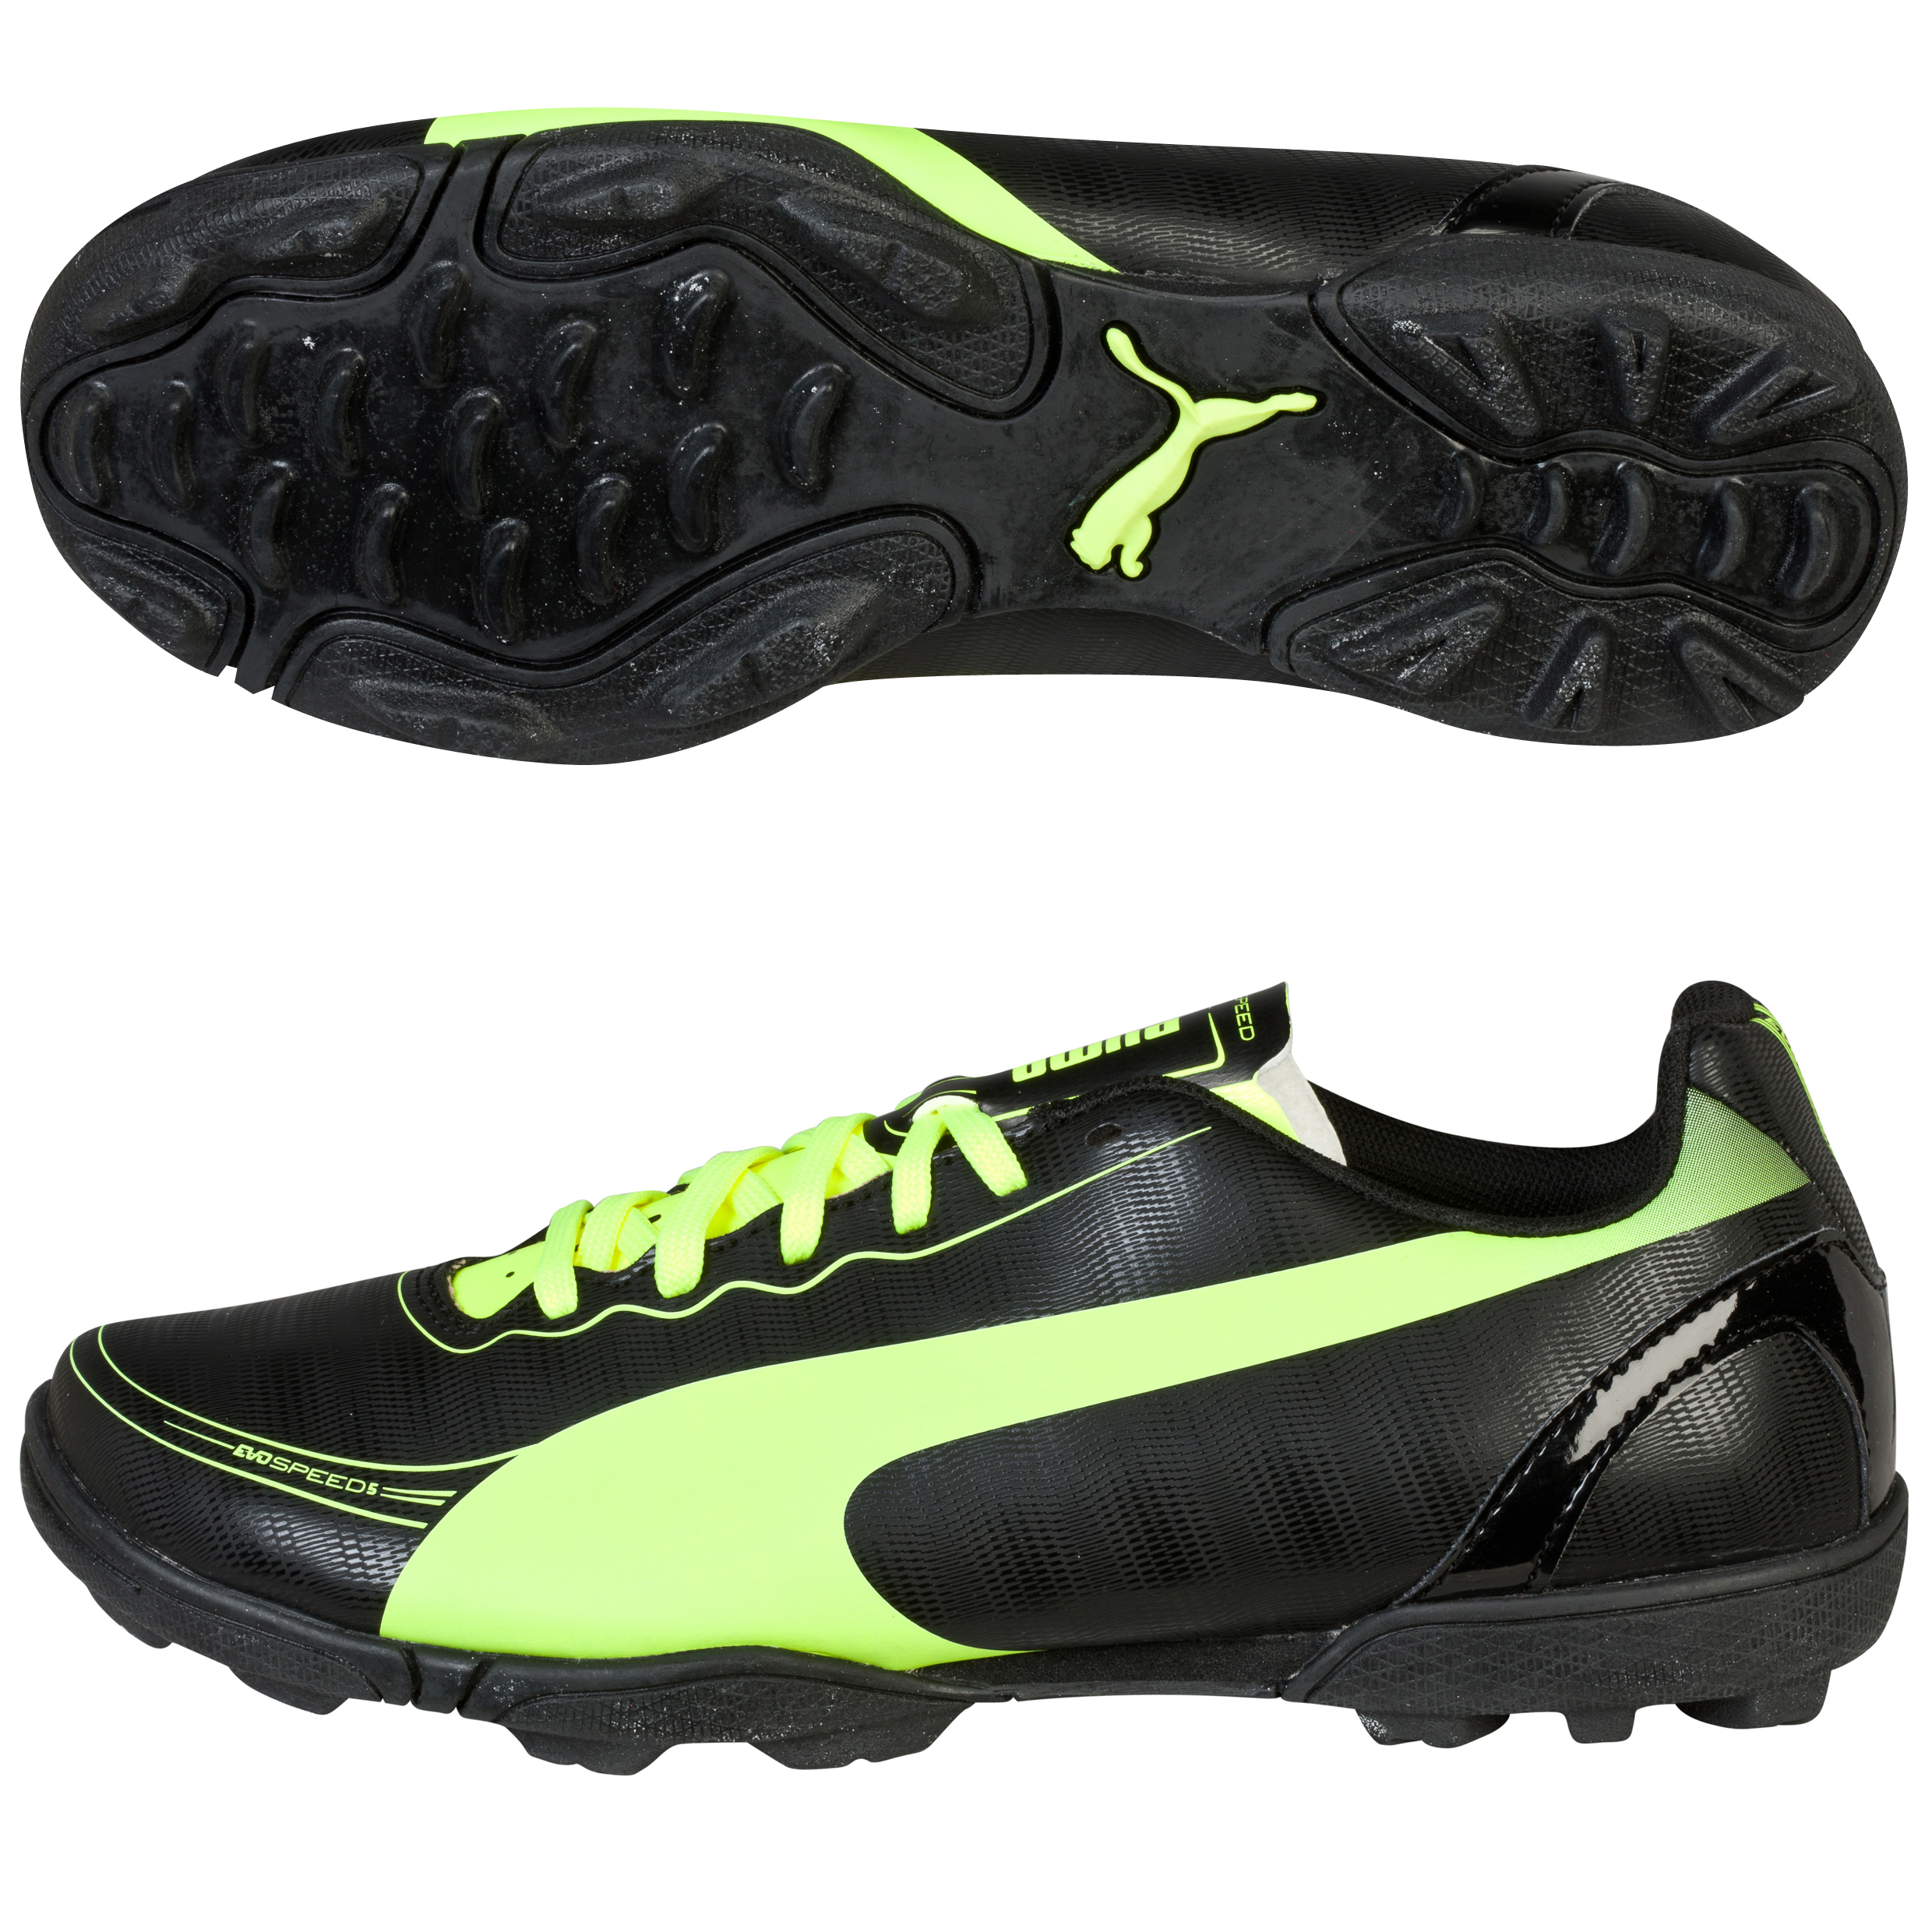 Puma evoSPEED 5.2 Astroturf Trainers Black